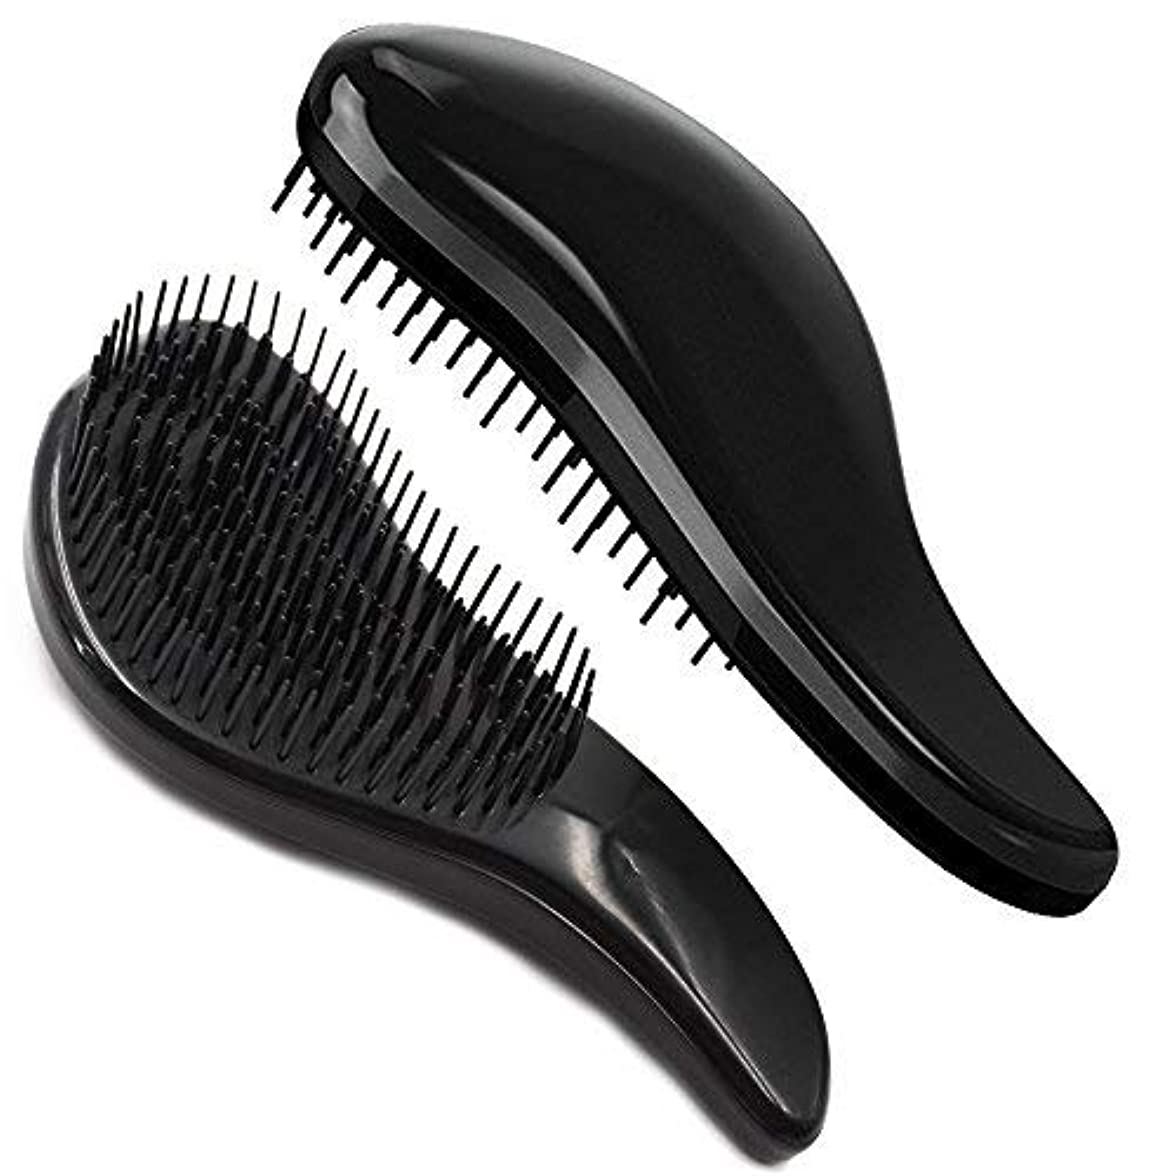 不良コンテンポラリー完了Brush Master Detangler Hair Comb Hair Brush for Wet Hair Curly Hair Straight Hair for Women Men Kids Black [並行輸入品]